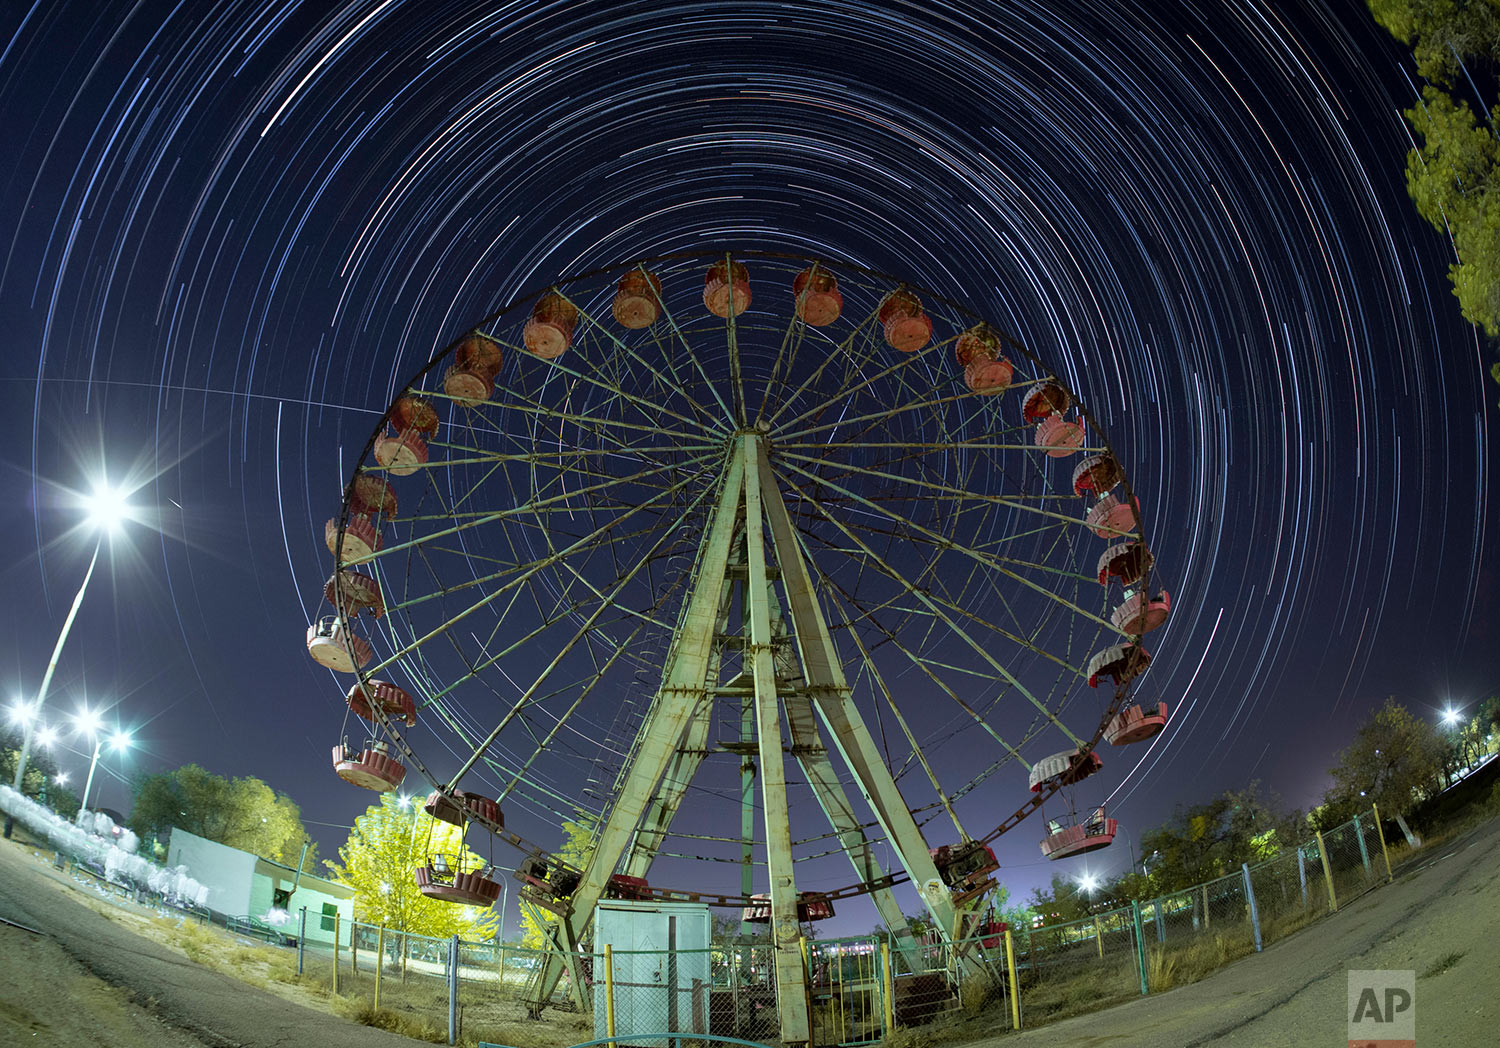 In this photo made with a three-hour-long exposure, the International Space Station moves in a line across the sky from left to right, along its orbit above a Ferris wheel in the Russian-leased Baikonur cosmodrome in Kazakhstan, Monday, Sept. 23, 2019, as stars move in an arc around the Polar Star, two days ahead of a Soyuz mission to the ISS with Russian cosmonaut Oleg Skripochka, U.S. astronaut Jessica Meir and United Arab Emirates astronaut Hazza Al Mansouri aboard. (AP Photo/Dmitri Lovetsky)